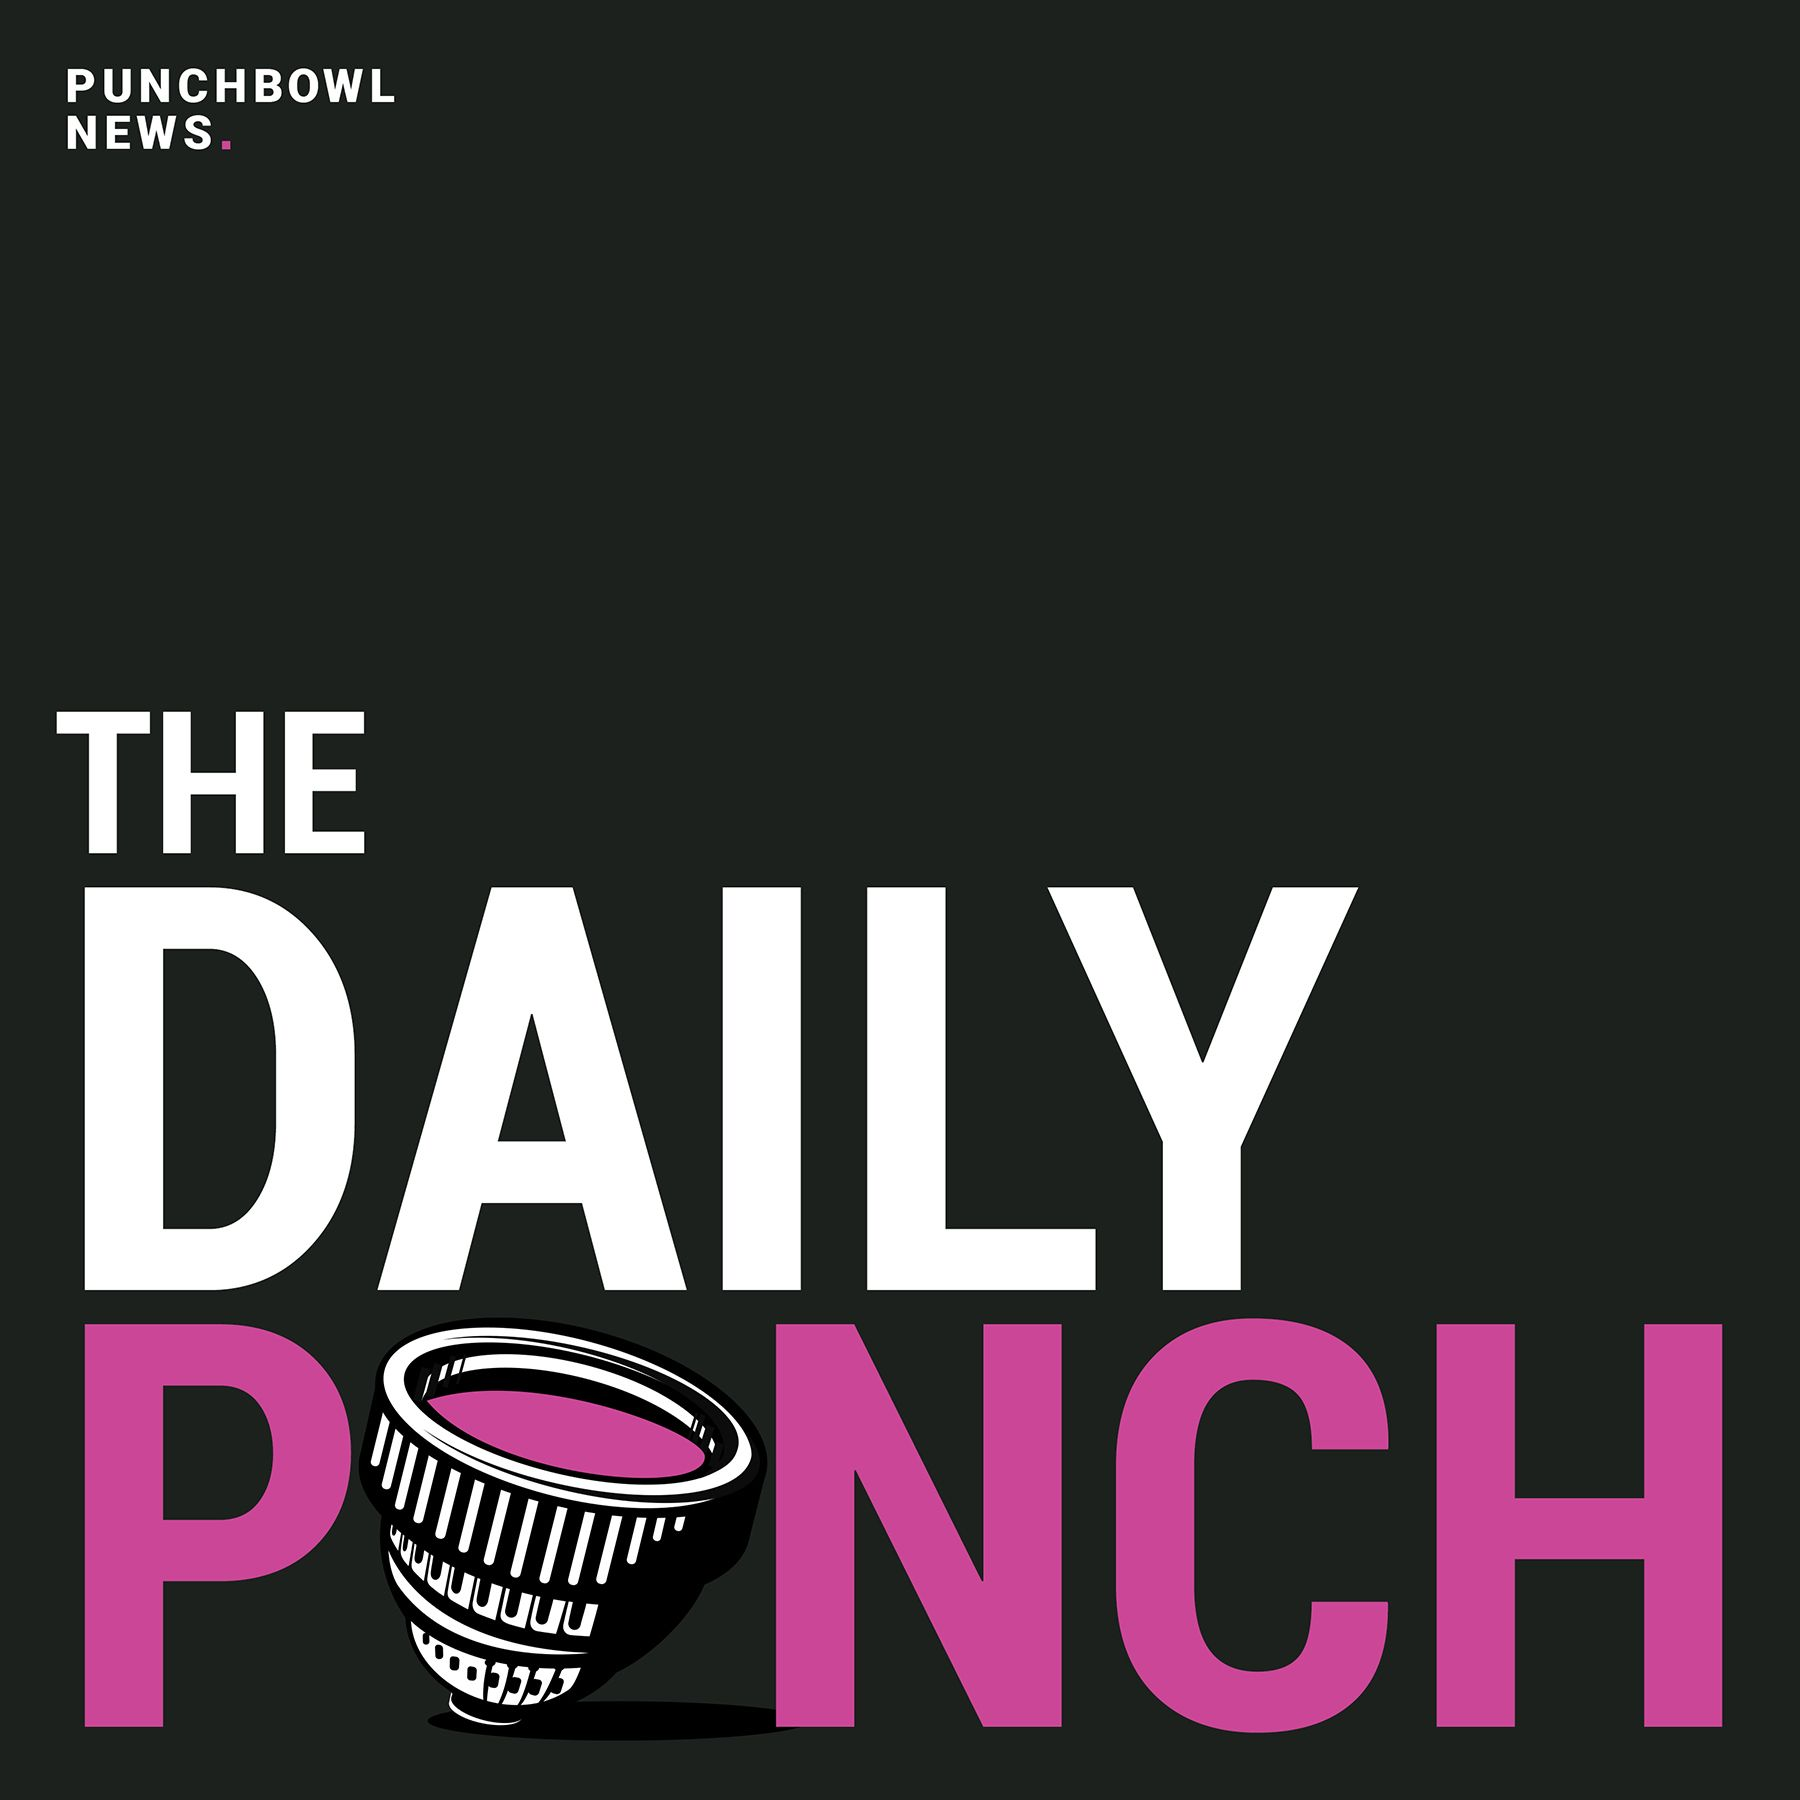 Introducing The Daily Punch